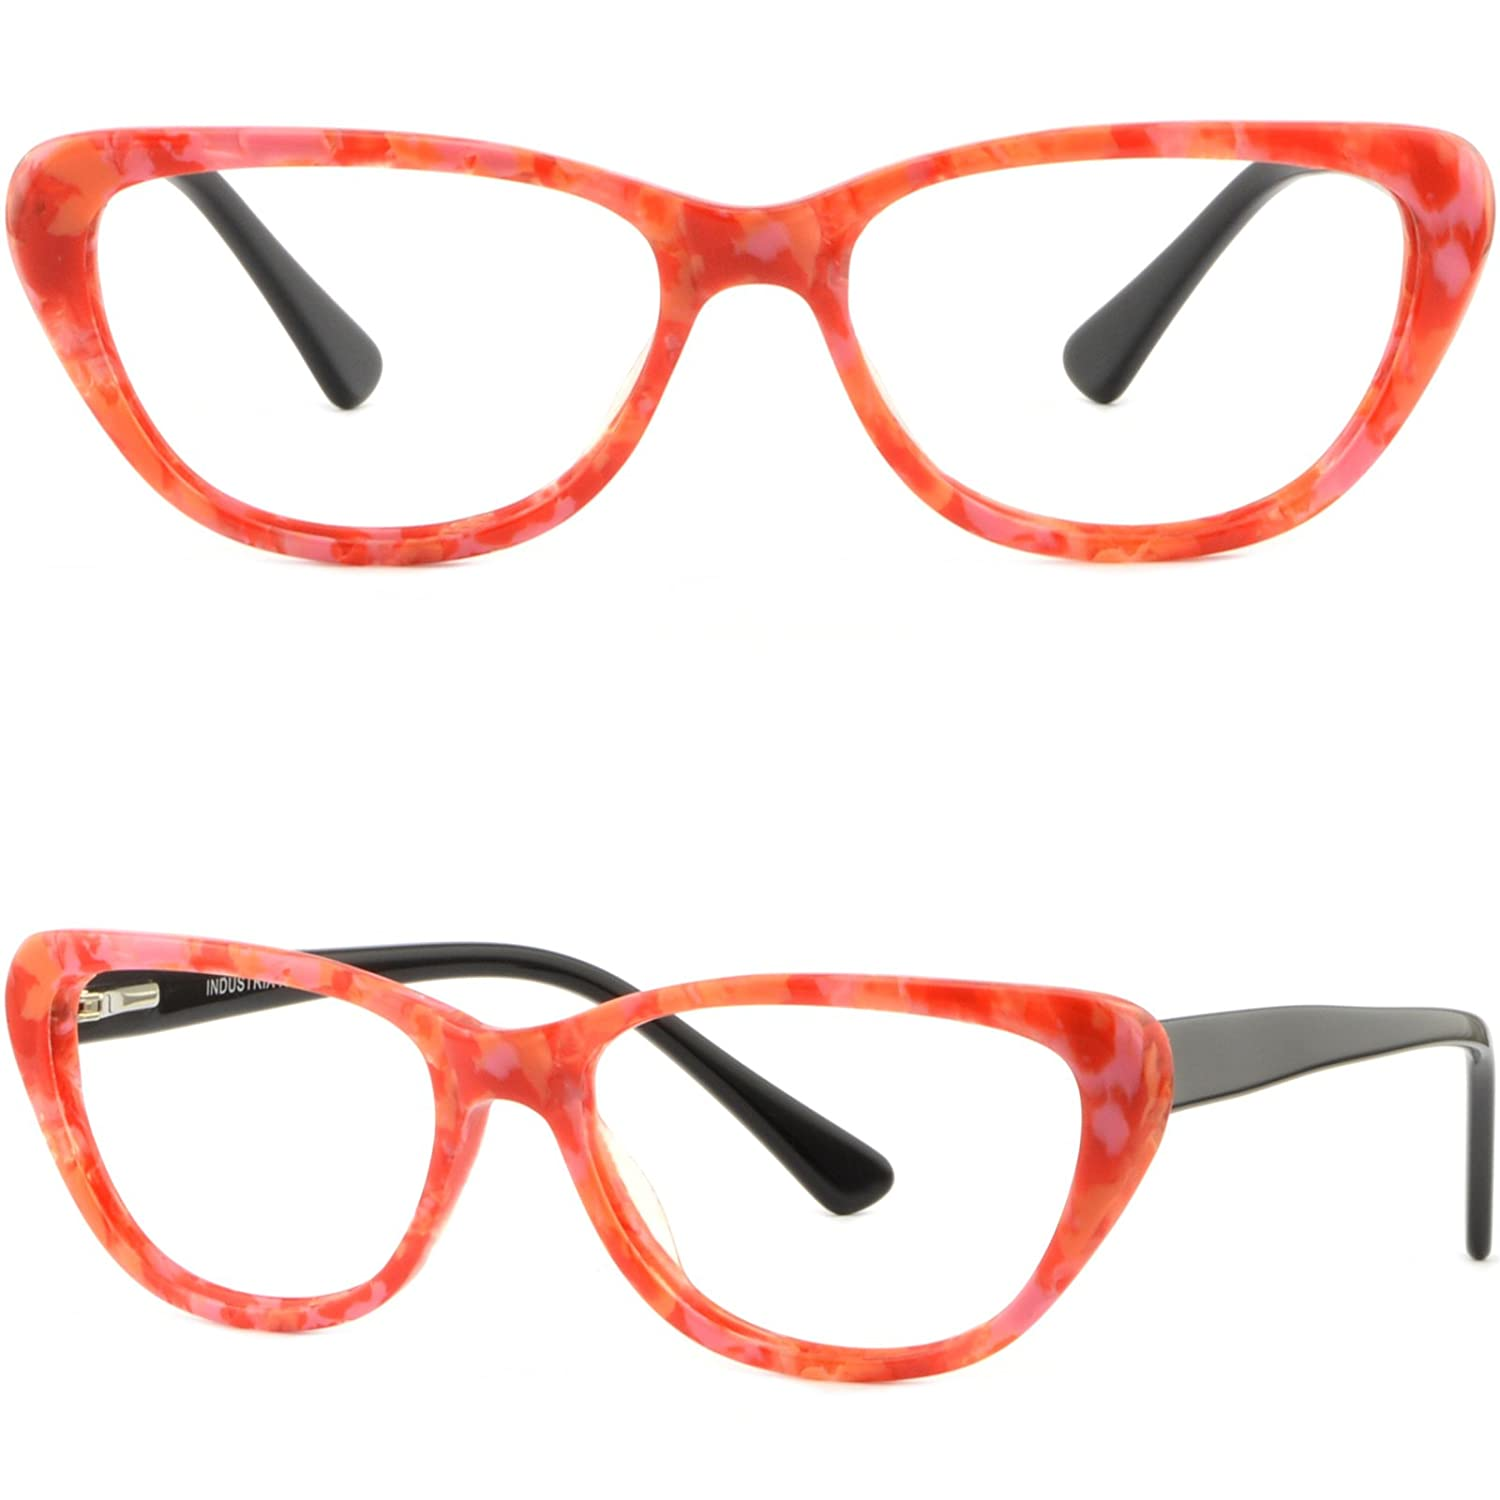 a77f13ca75 Amazon.com  Women s Cat Eye Plastic Frames Spring Hinges Acetate  Prescription Glasses Red  Clothing